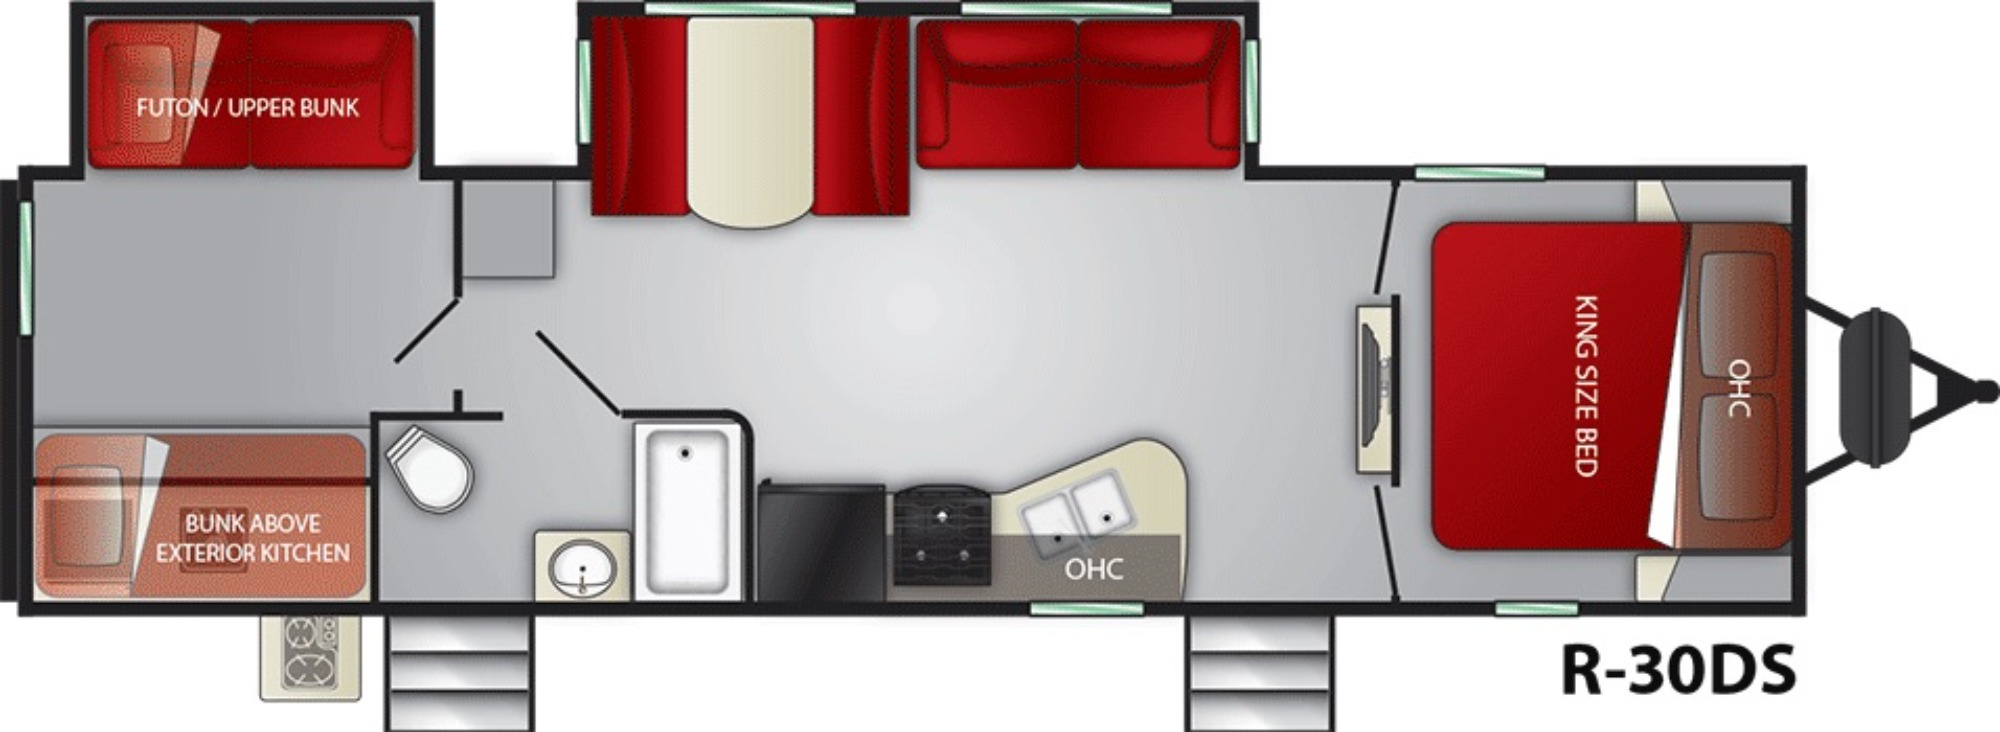 View Floor Plan for 2021 CRUISER RV RADIANCE 30DS